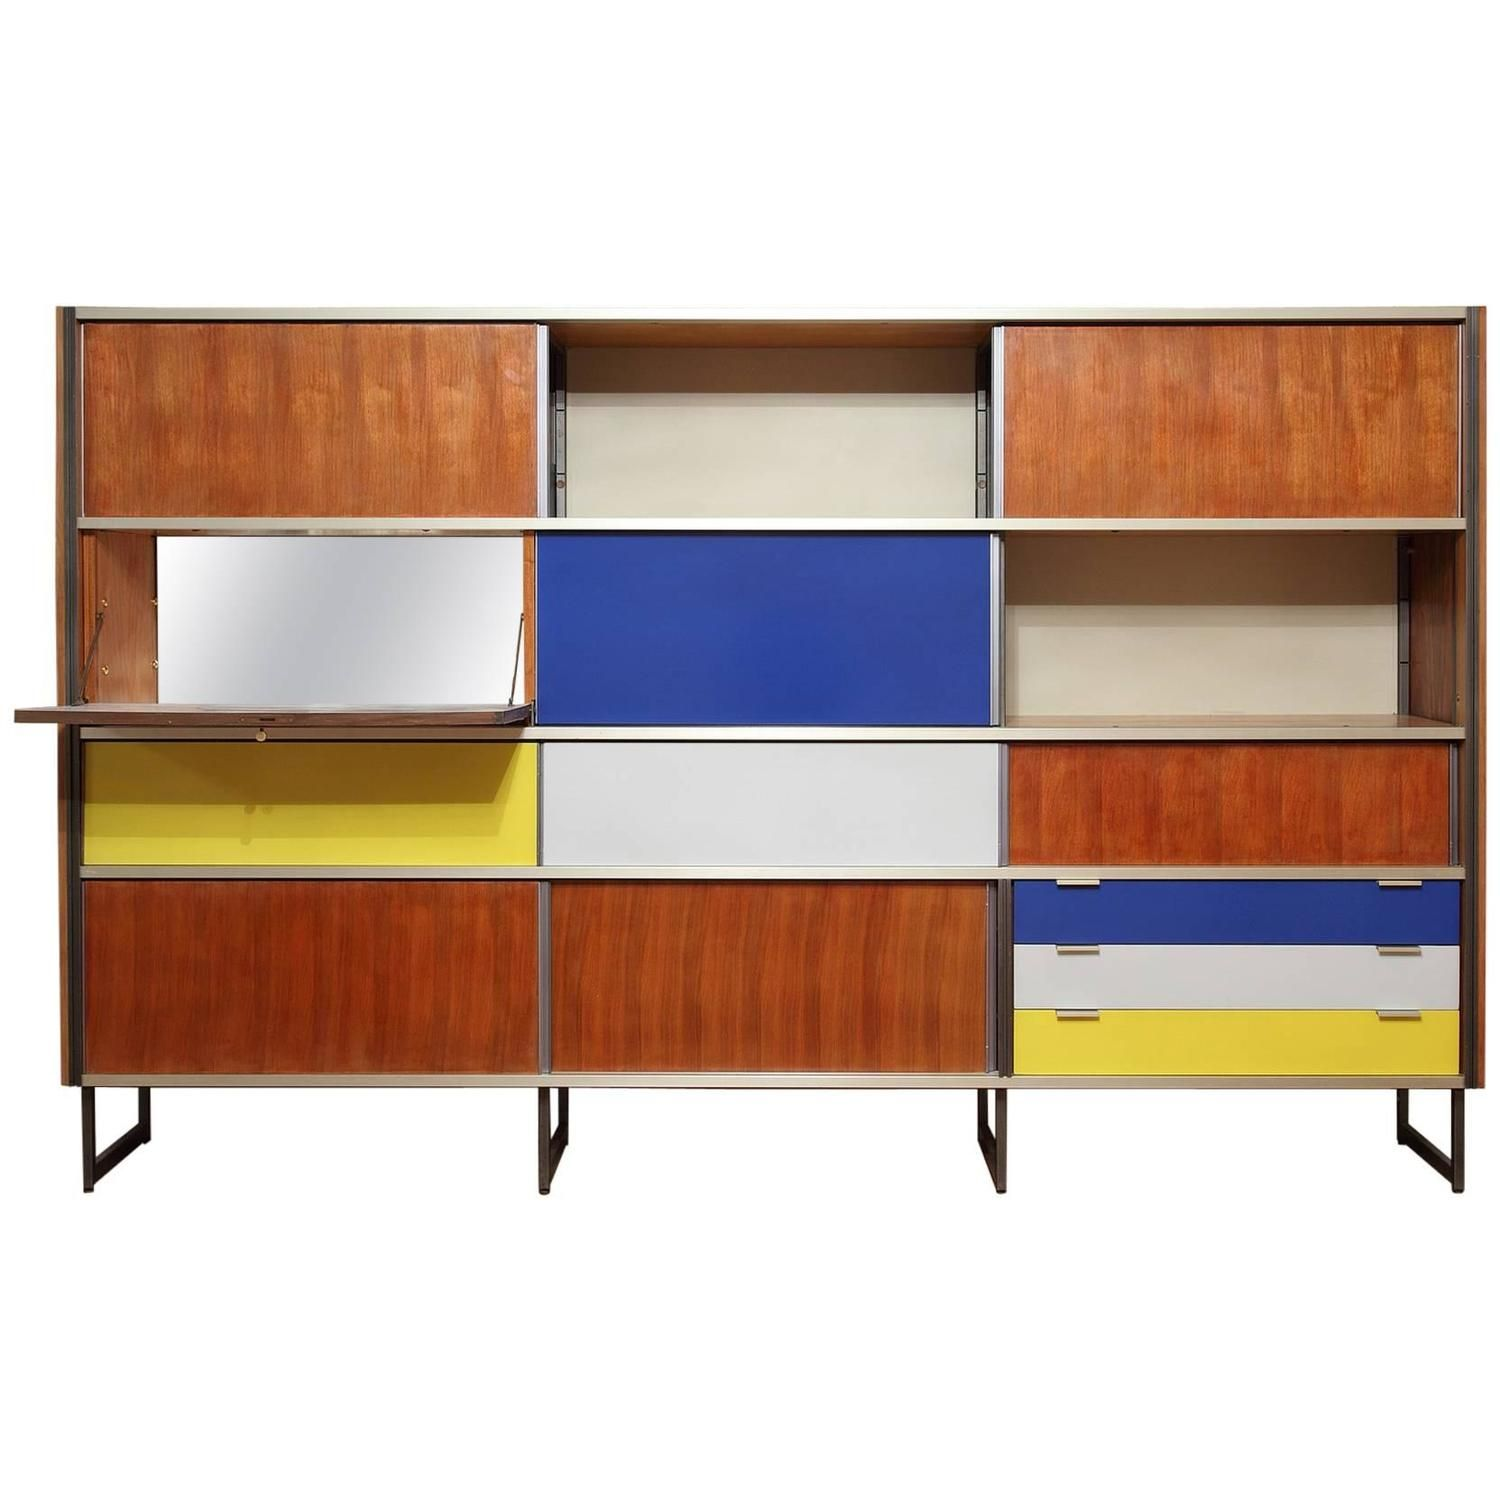 Modernist Cabinet By Georges Frydman For Efa Creative Wall Decor Southern Wall Decor Simple Wall Decor